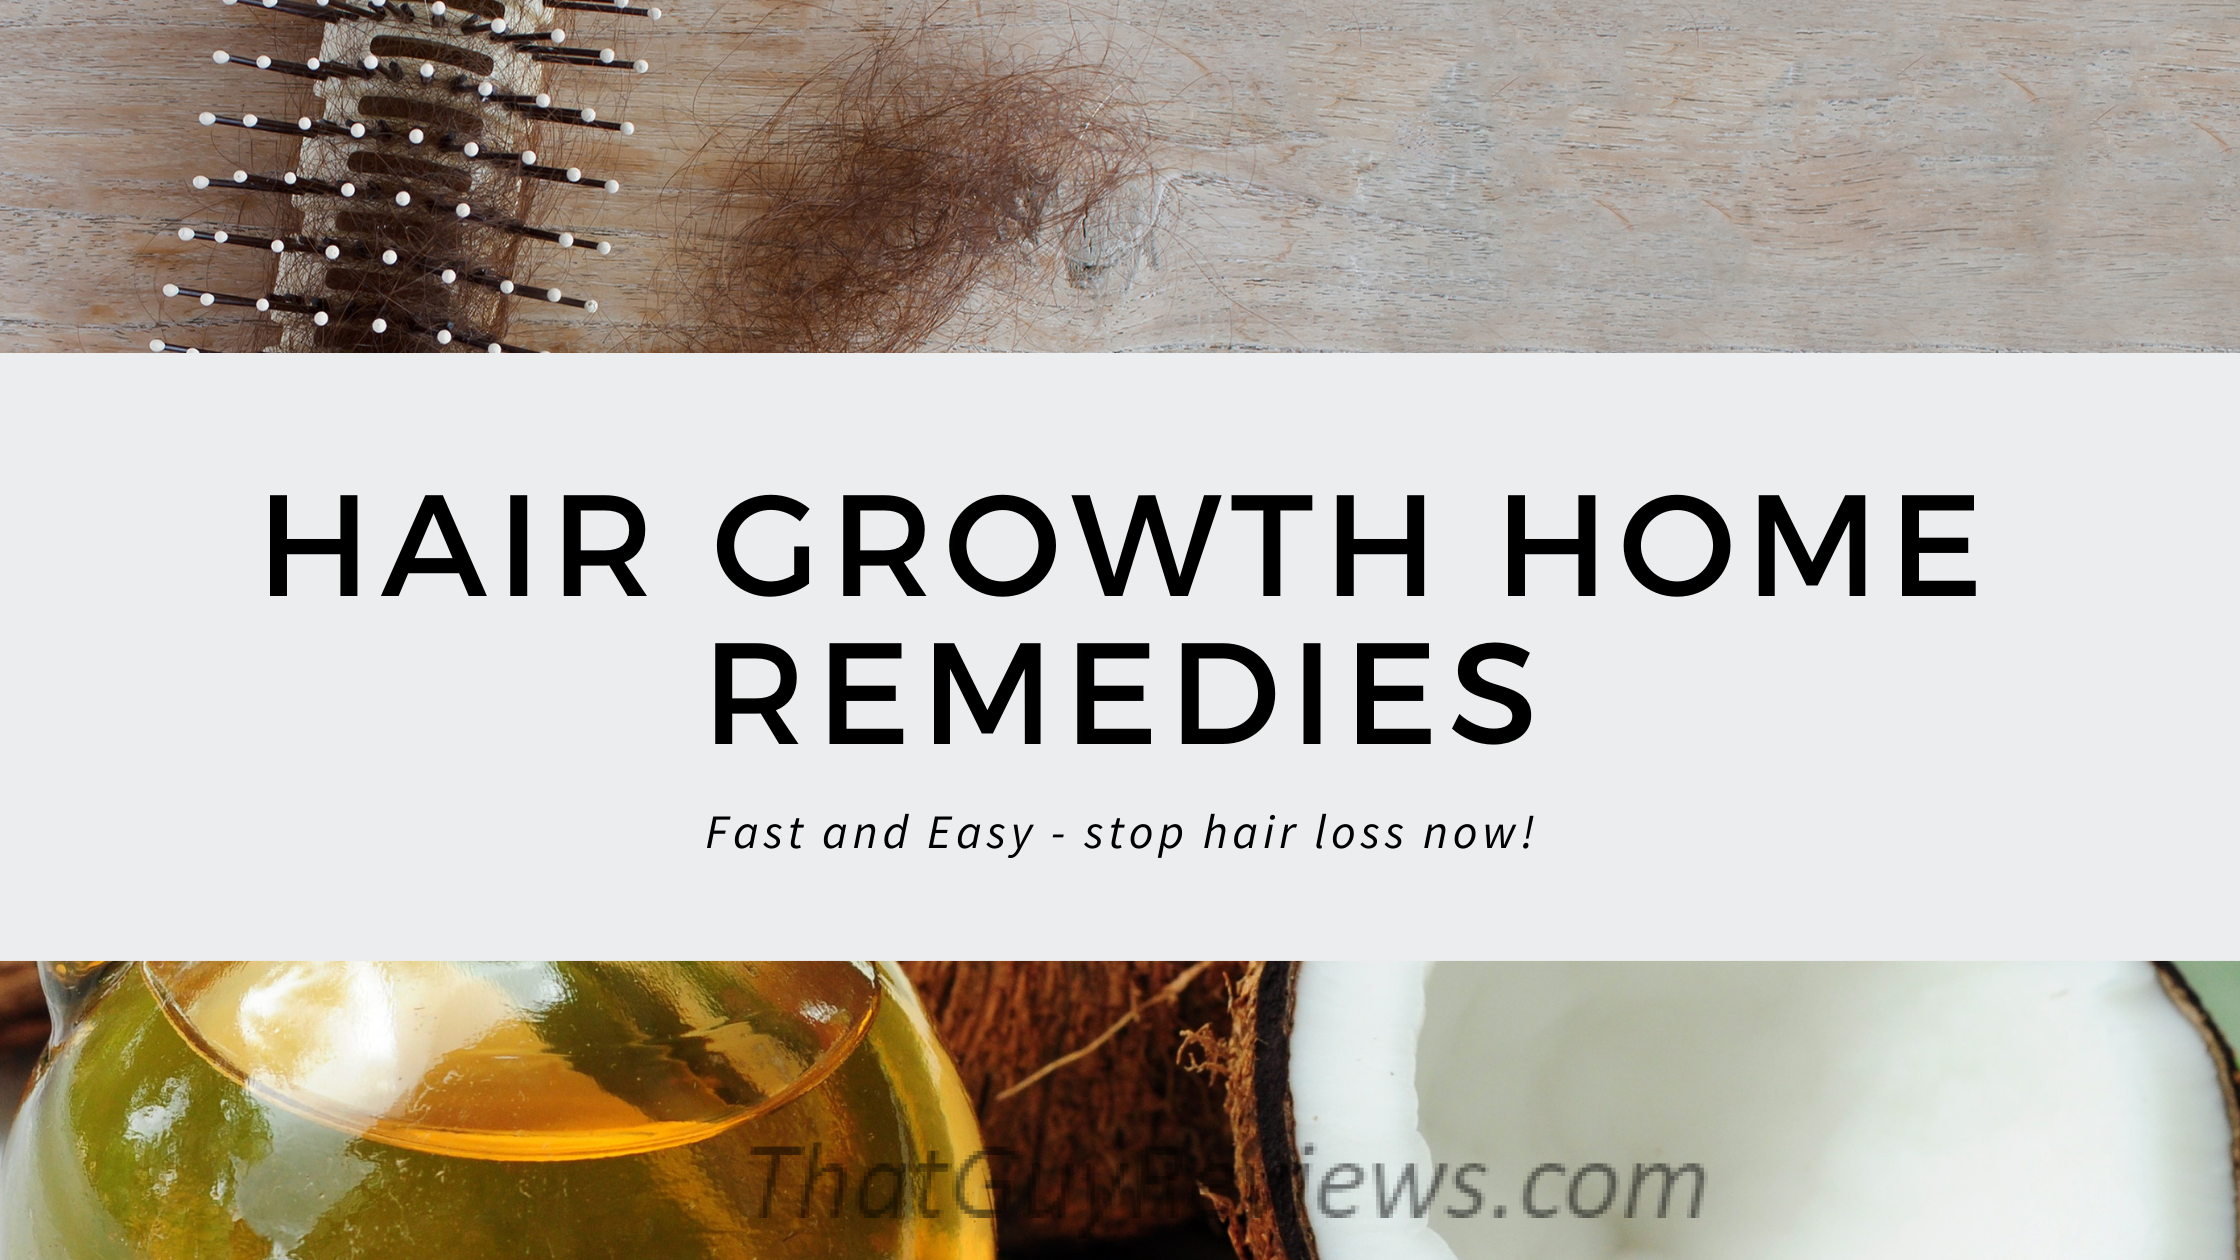 Hair Growth Home Remedies